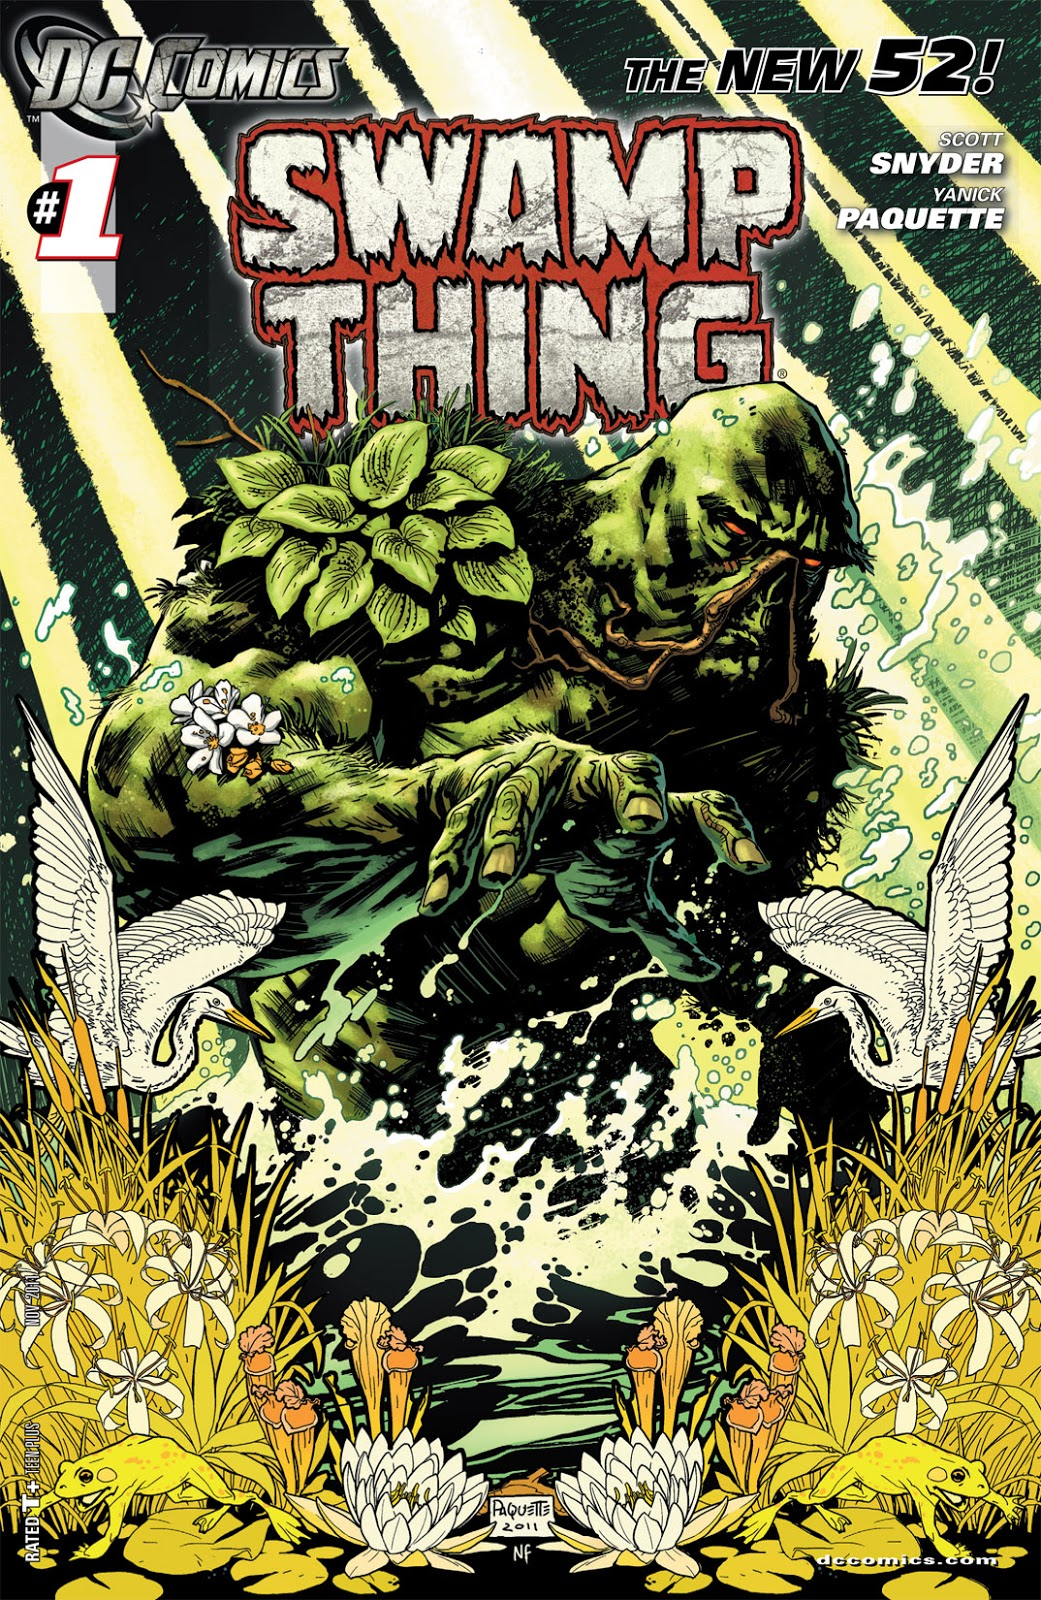 Monster Blog: Swamp Thing, you make my heart sing?